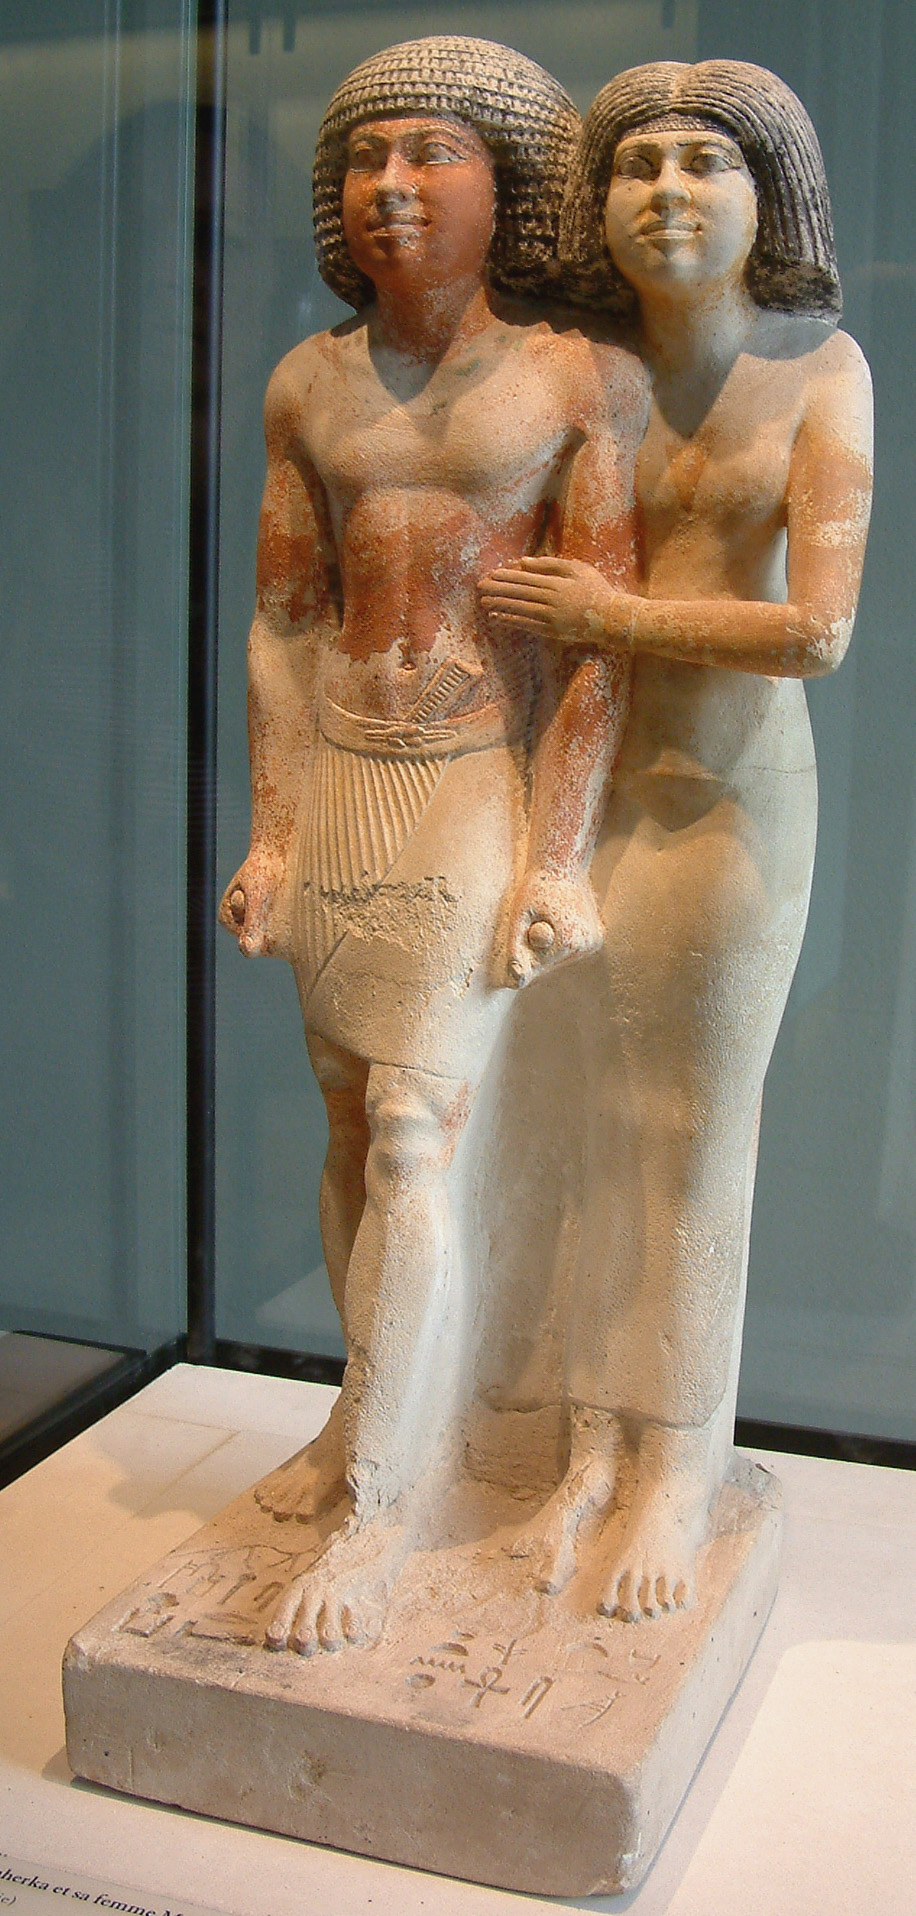 http://upload.wikimedia.org/wikipedia/commons/e/e1/Egypte_louvre_279_couple.jpg